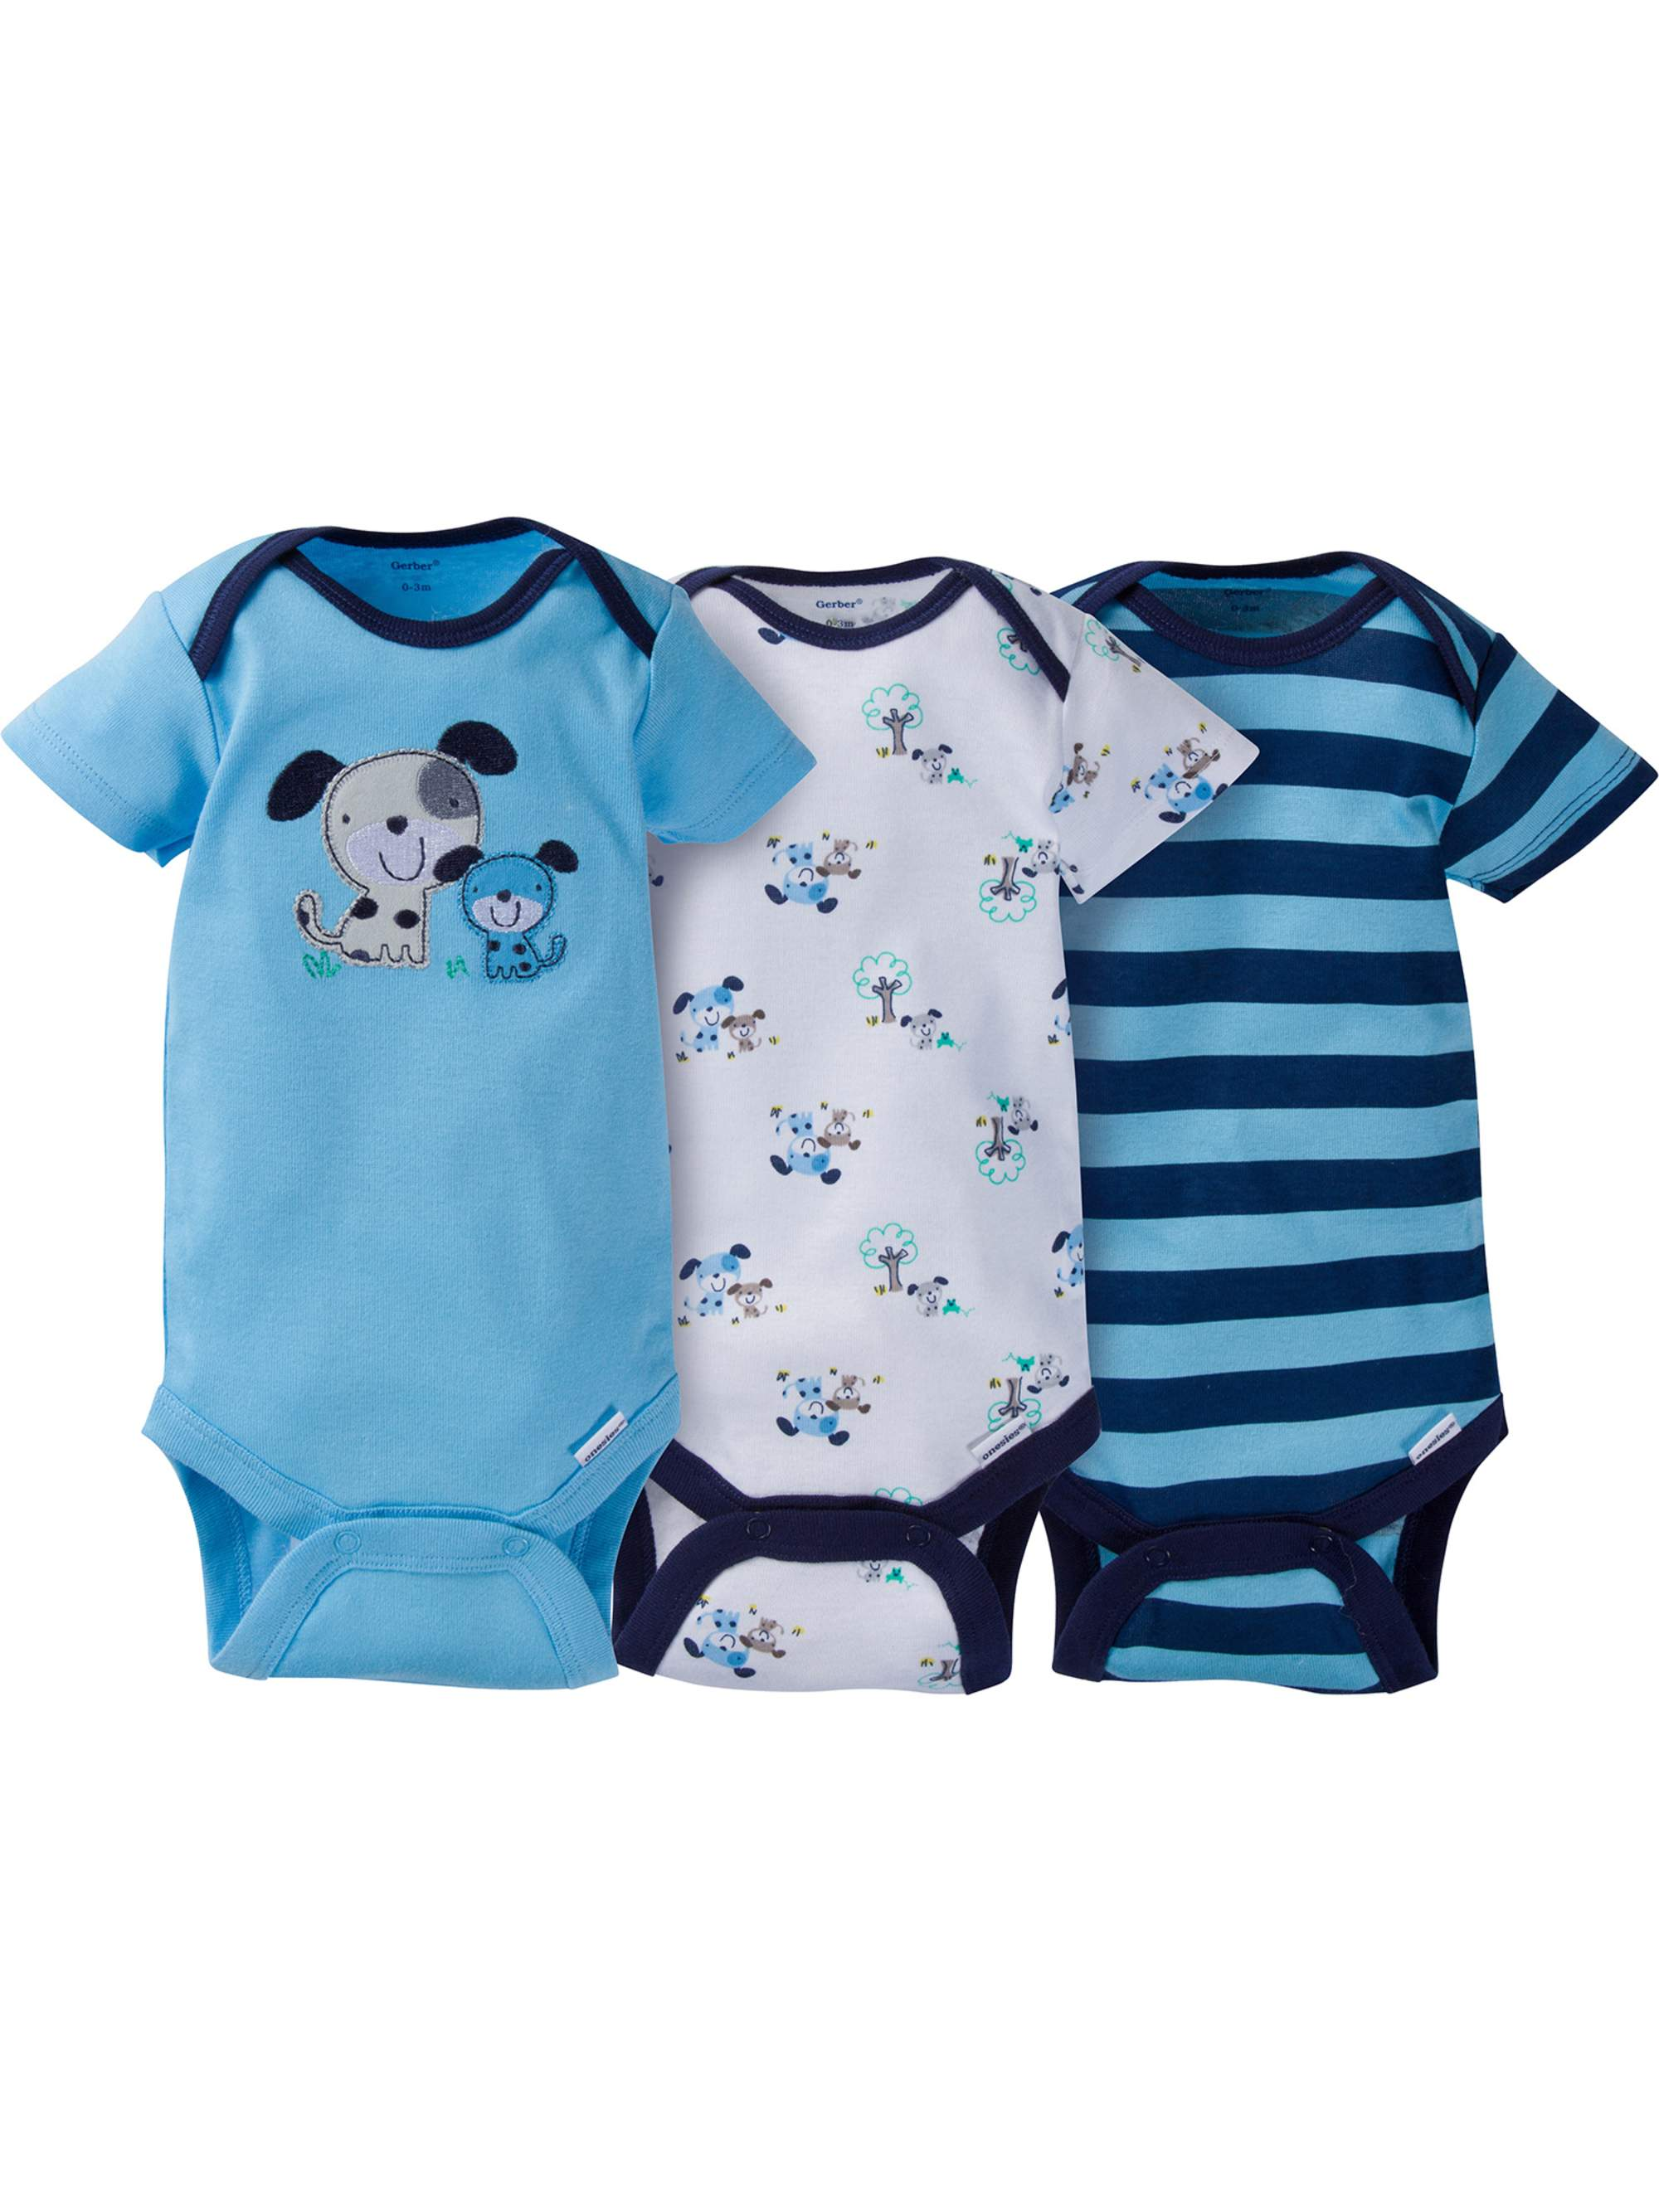 Newborn Baby Boy Assorted Short Sleeve Onesies Bodysuits, 3-Pack